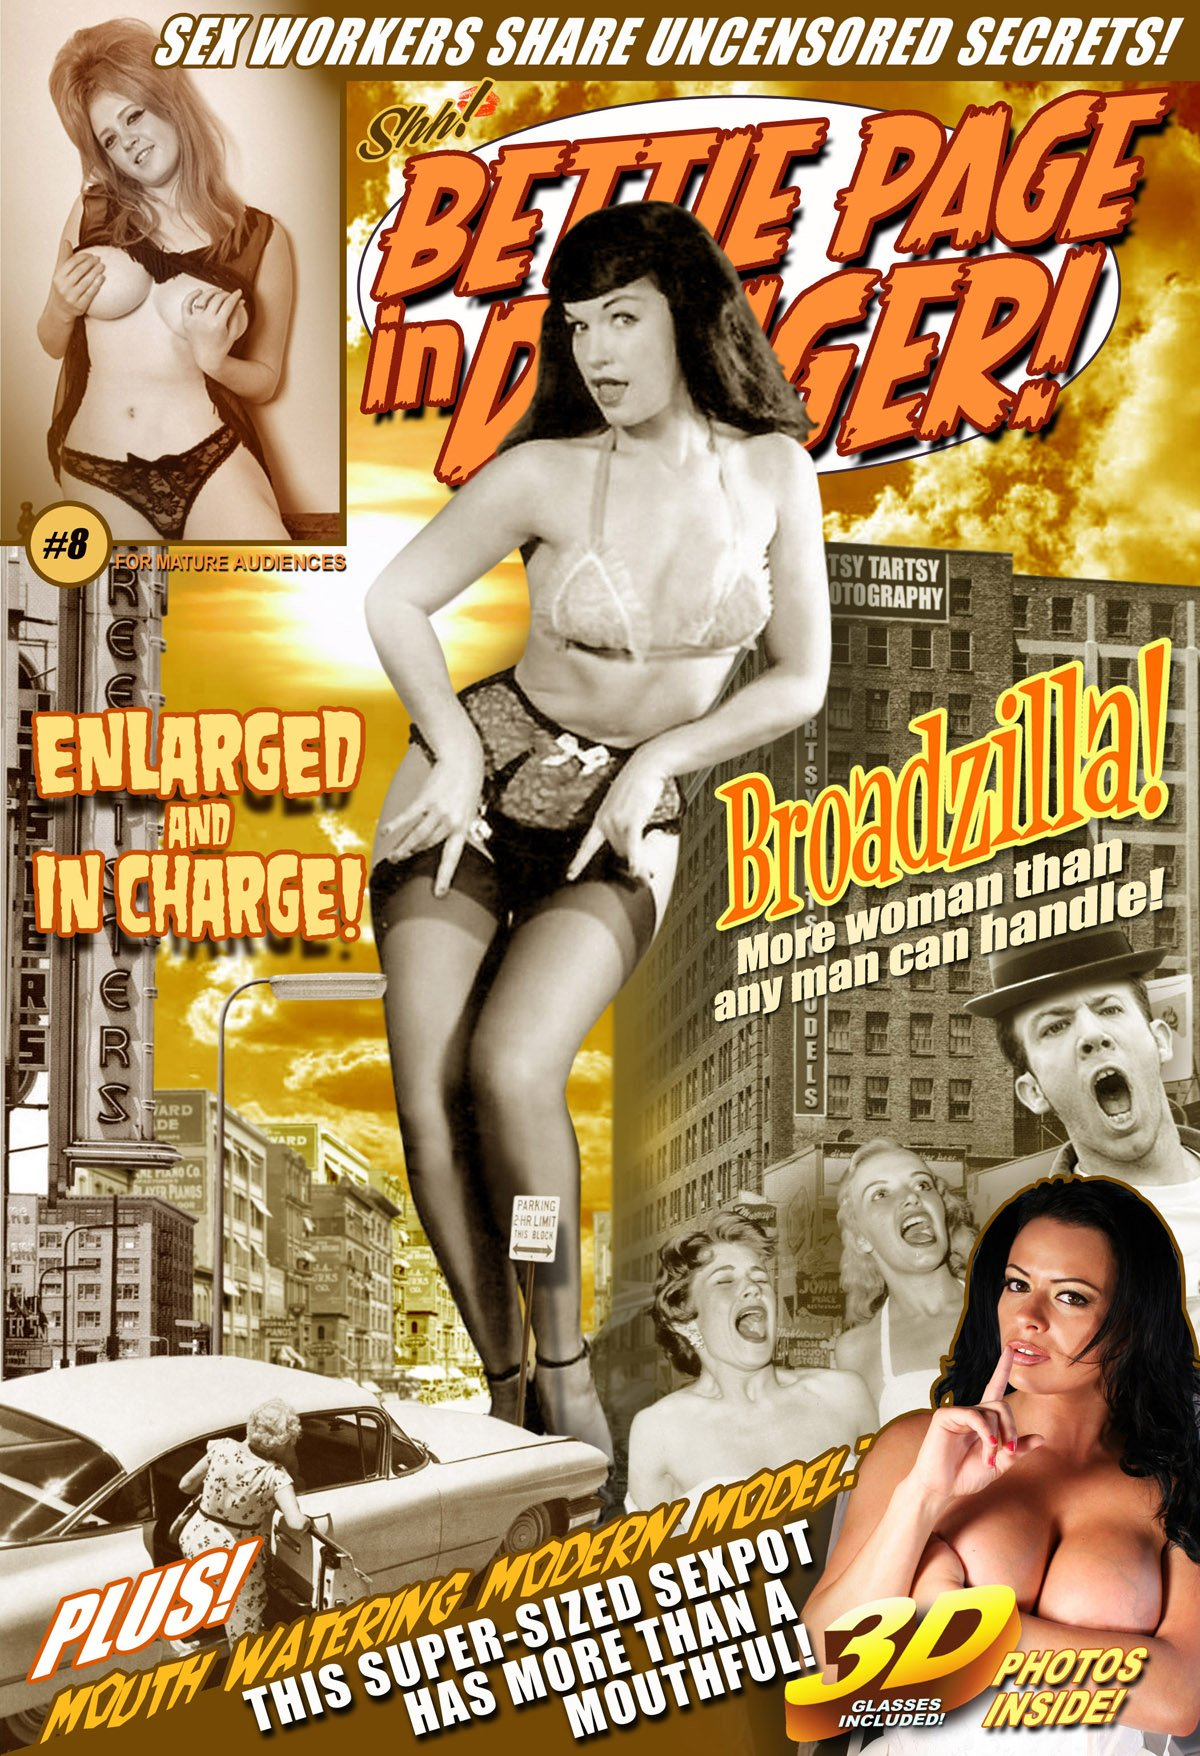 Read Online Bettie Page In Danger! #8 Enlarged And In Charge! 3-D Photo Comic pdf epub